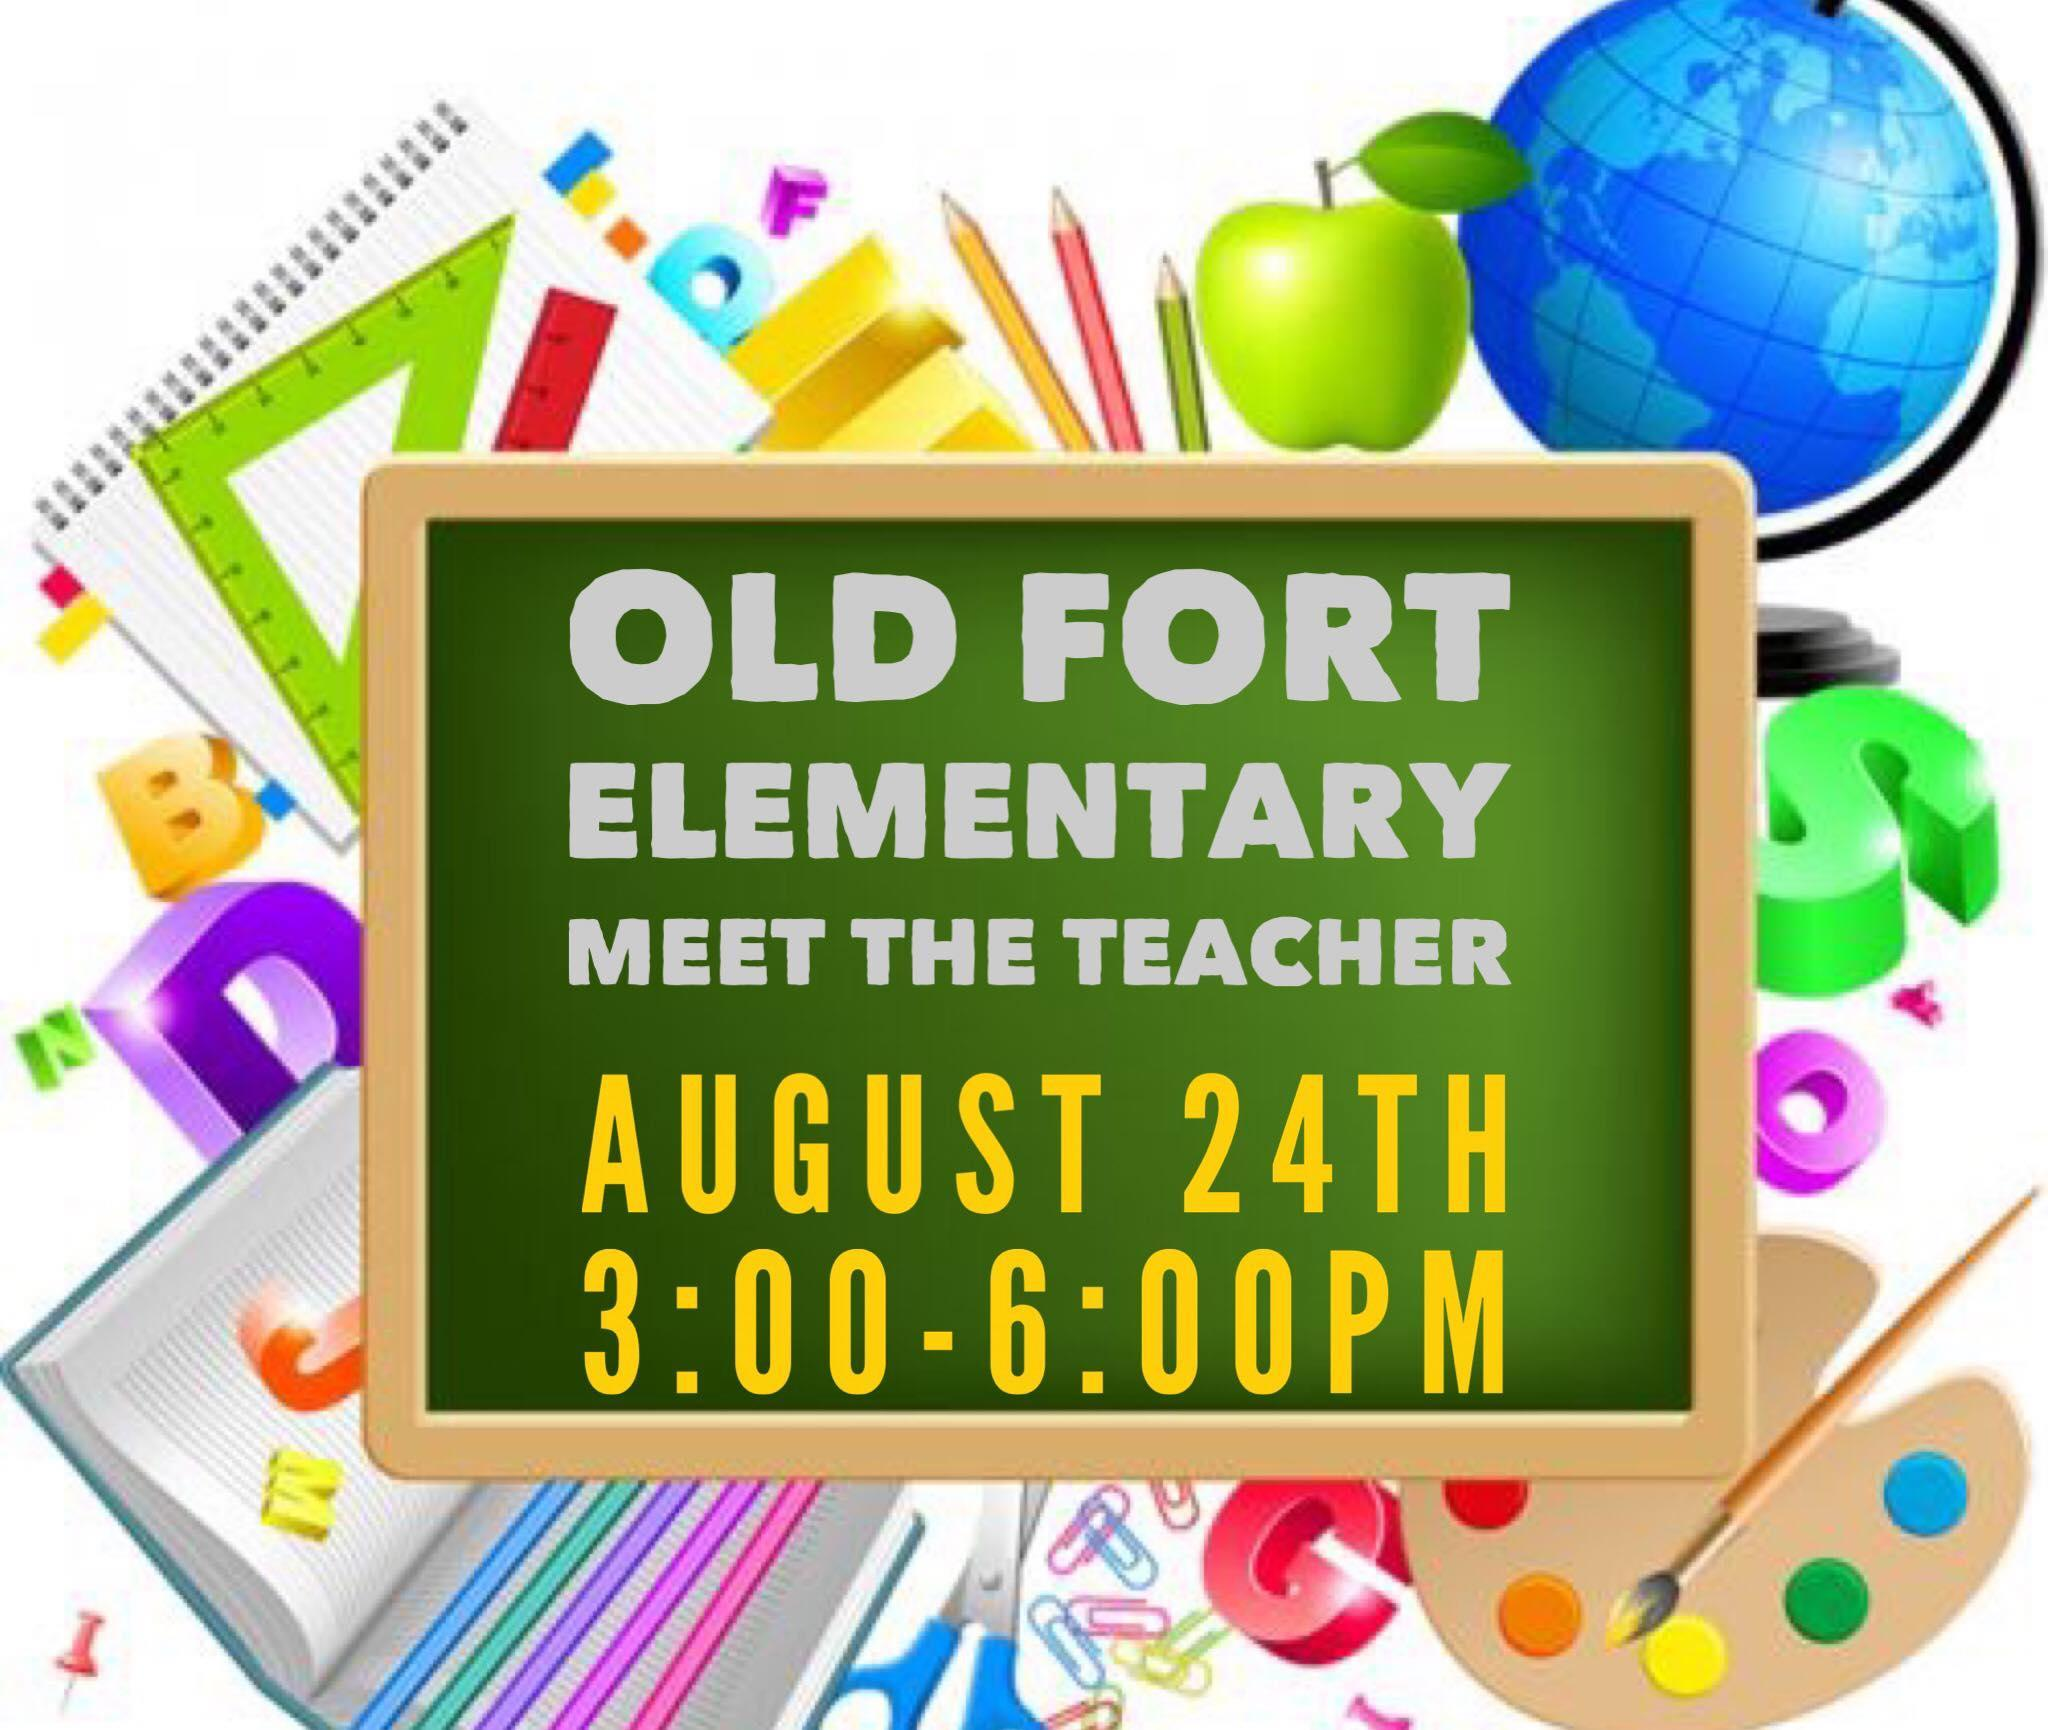 Meet the Teachers at OFE on Friday, August 24th 3:00 - 6:00 pm.